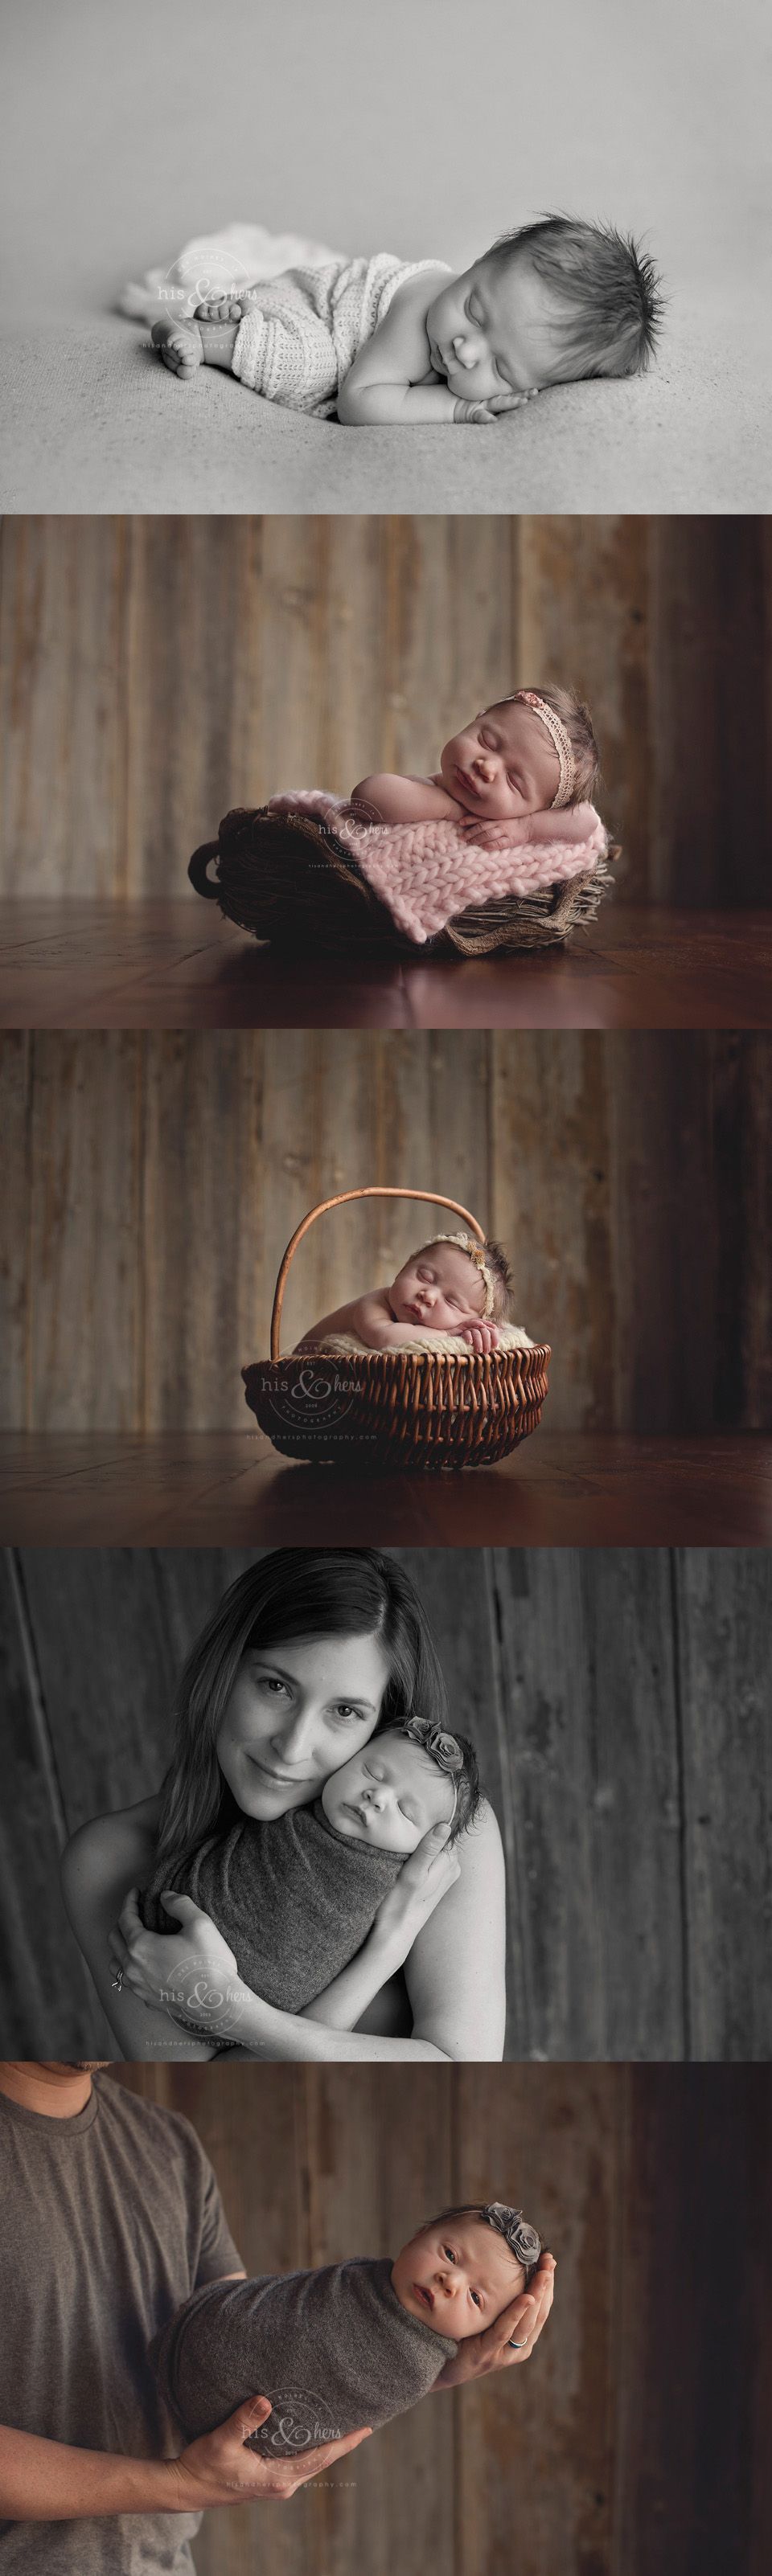 iowa newborn photographer des moines iowa baby photographer photography studio